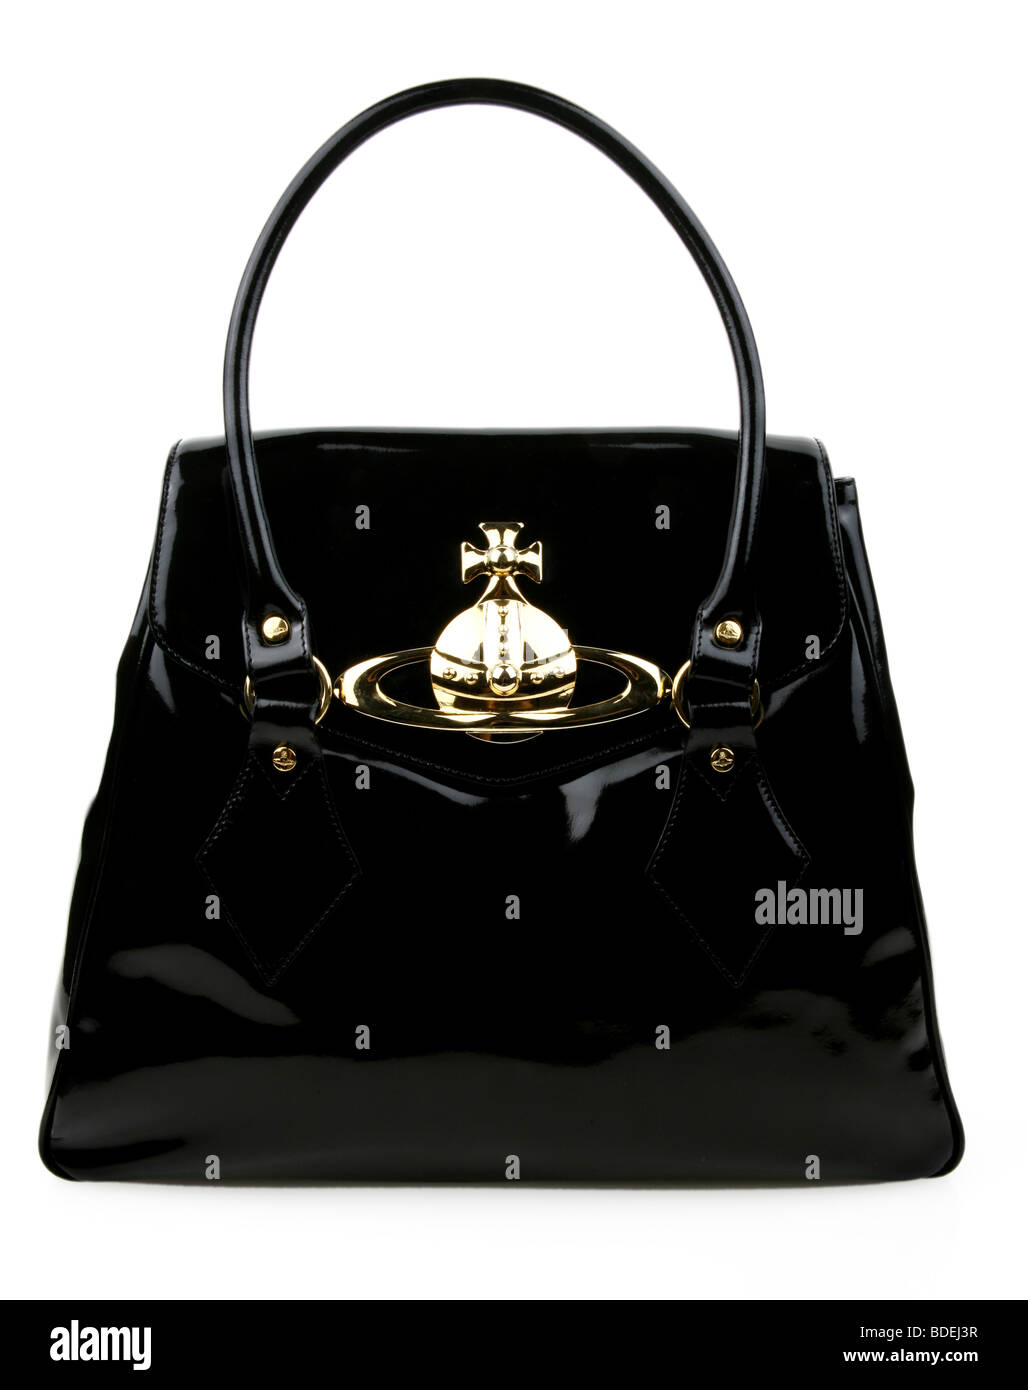 0bda20b85afb Mulberry handbag in black patent shiny soft leather. BWMMF2 (RM). Vivienne  Westwood Patent Leather Bag - Stock Image